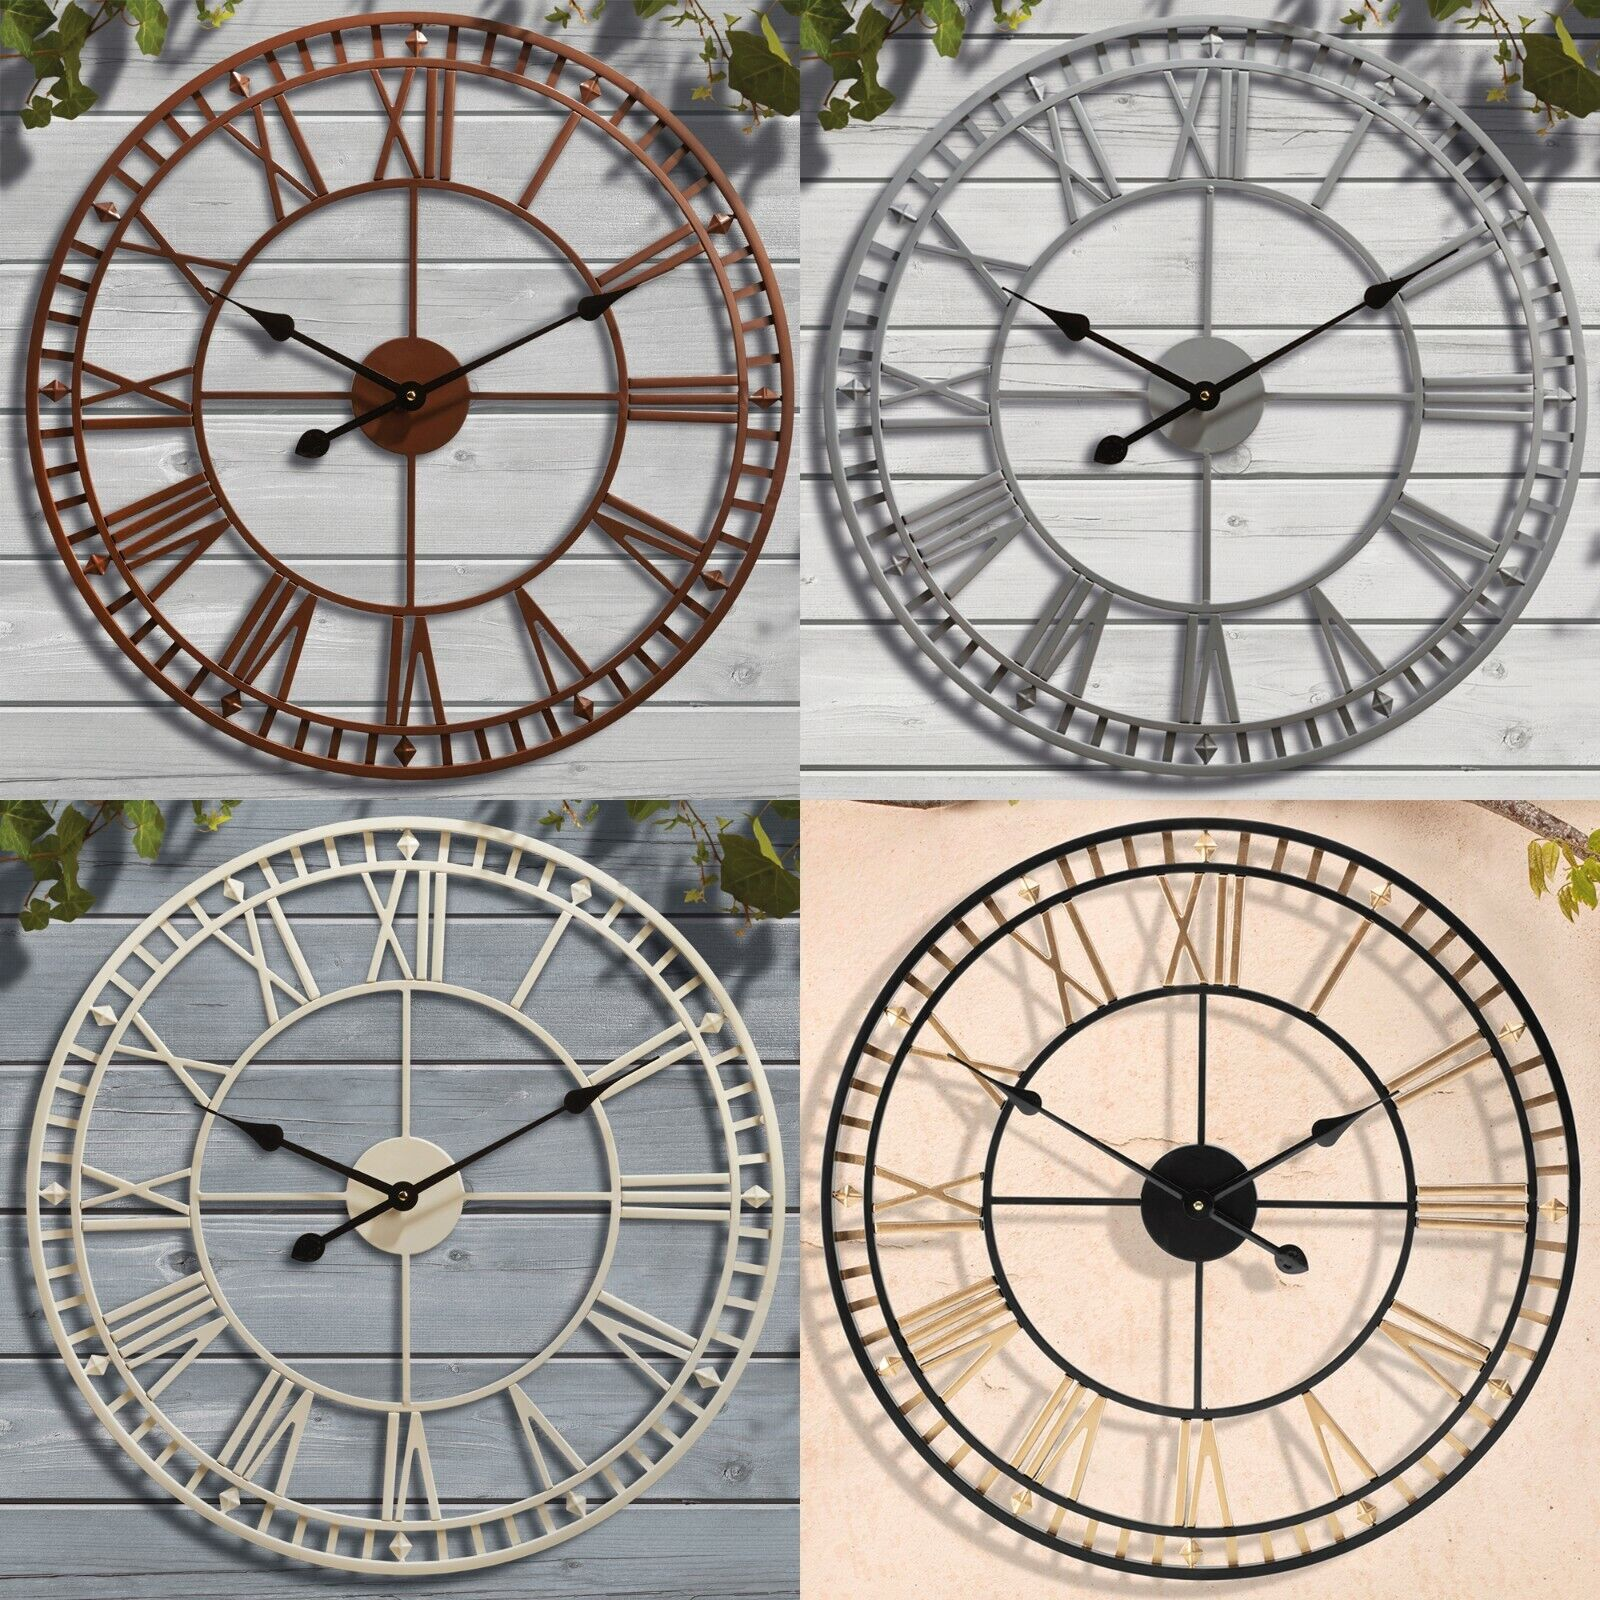 Details About Giant Garden Wall Clock Roman Numeral Metal Outdoor Large Round Face 60cm New